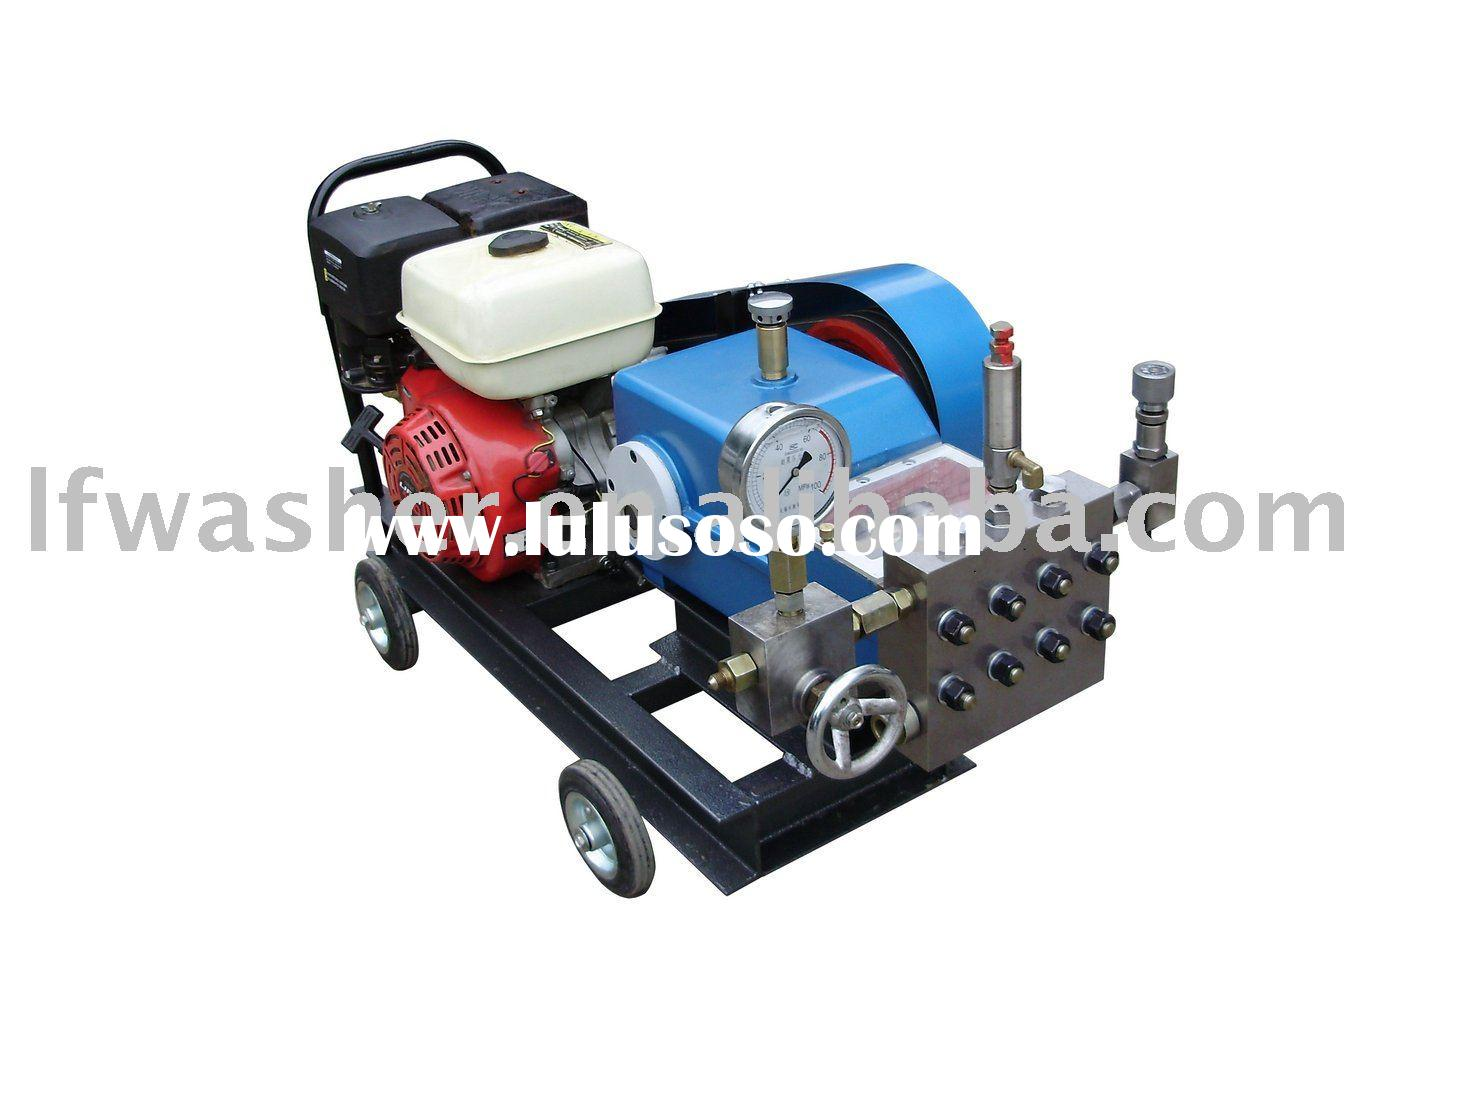 industrial washing machine,water jet machine,pipeline cleaner,ultra high pressure washer